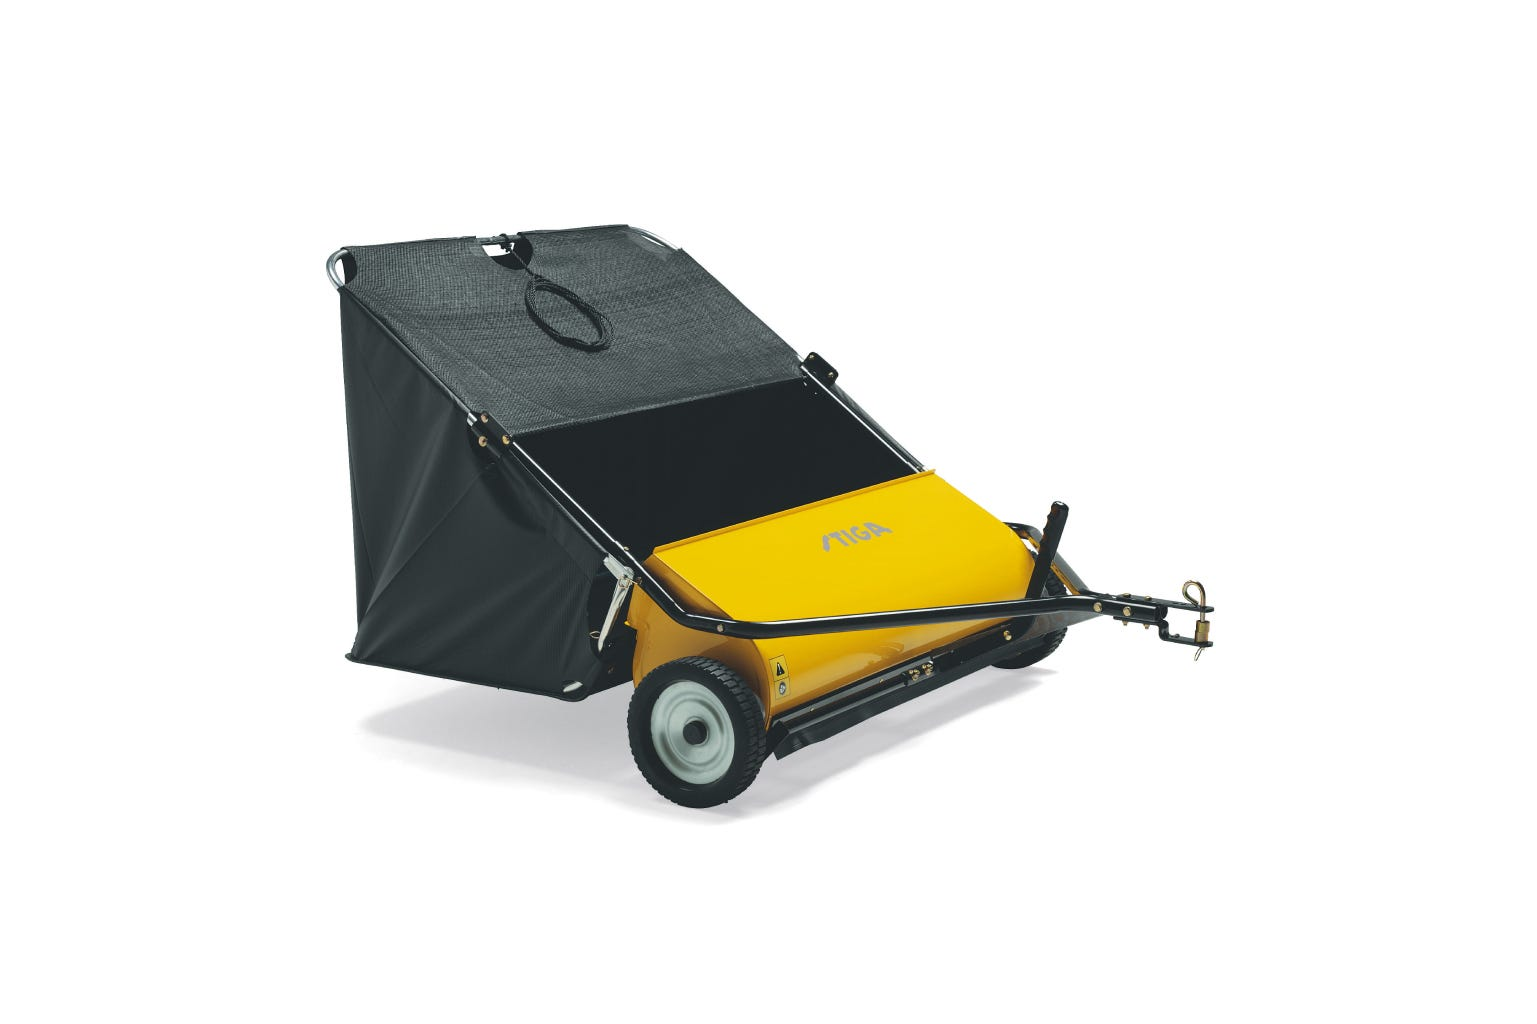 STIGA grass & leaf collector accessory for STIGA front mowers is a perfect partner during spring and autumn